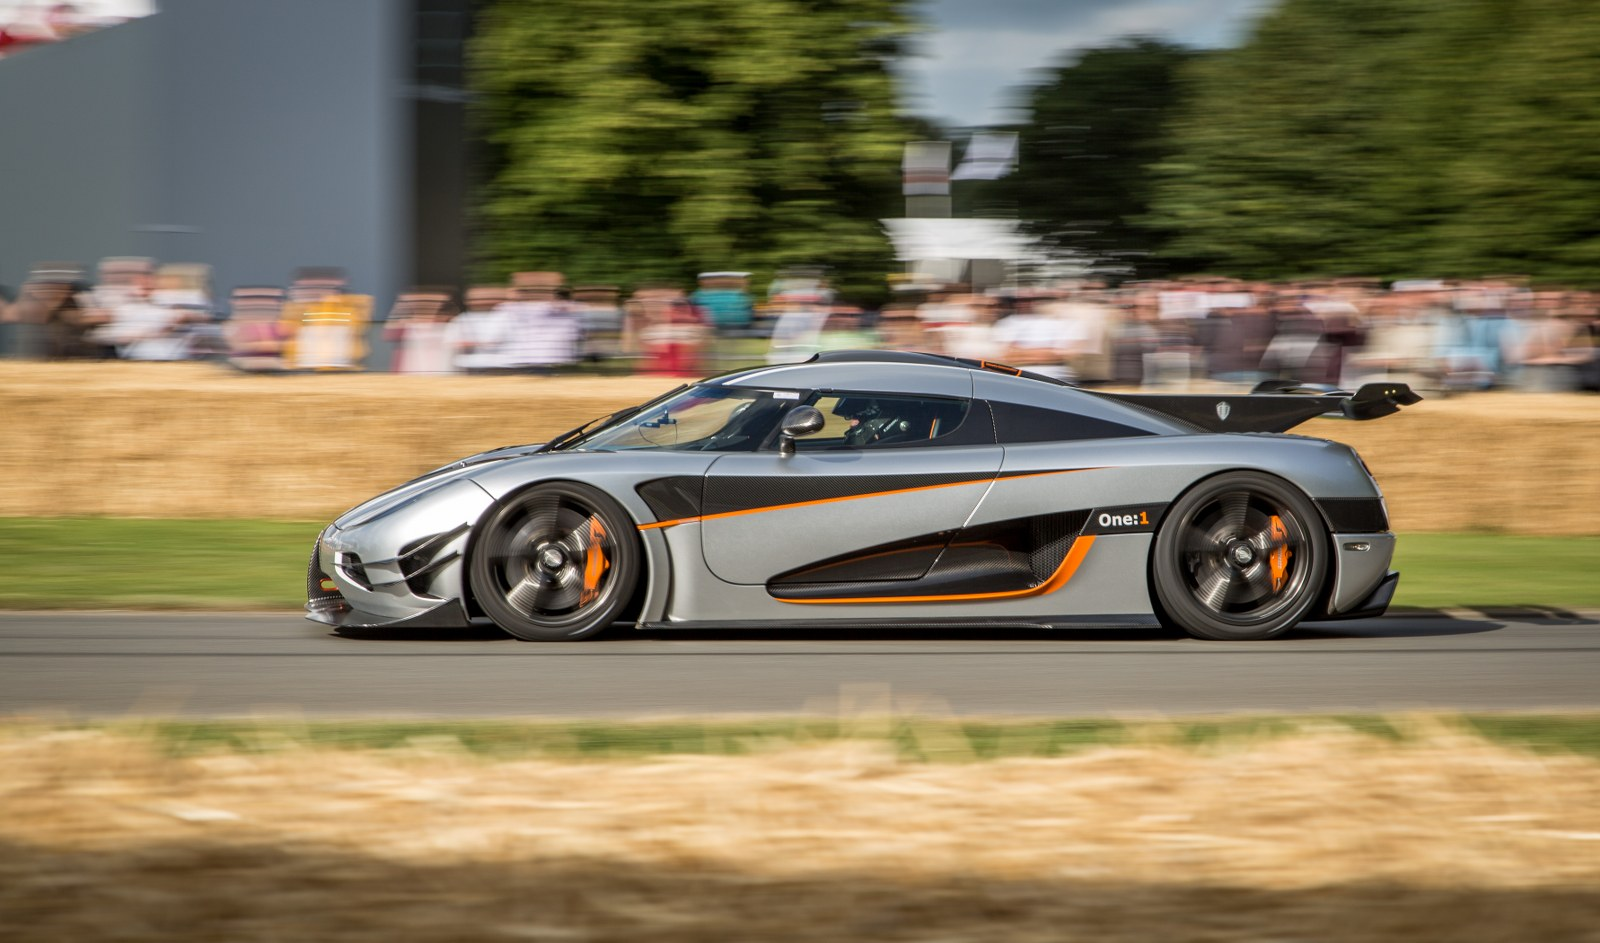 Koenigsegg One 1 >> Goodwood Gallery - The big Four - Koenigsegg One:1